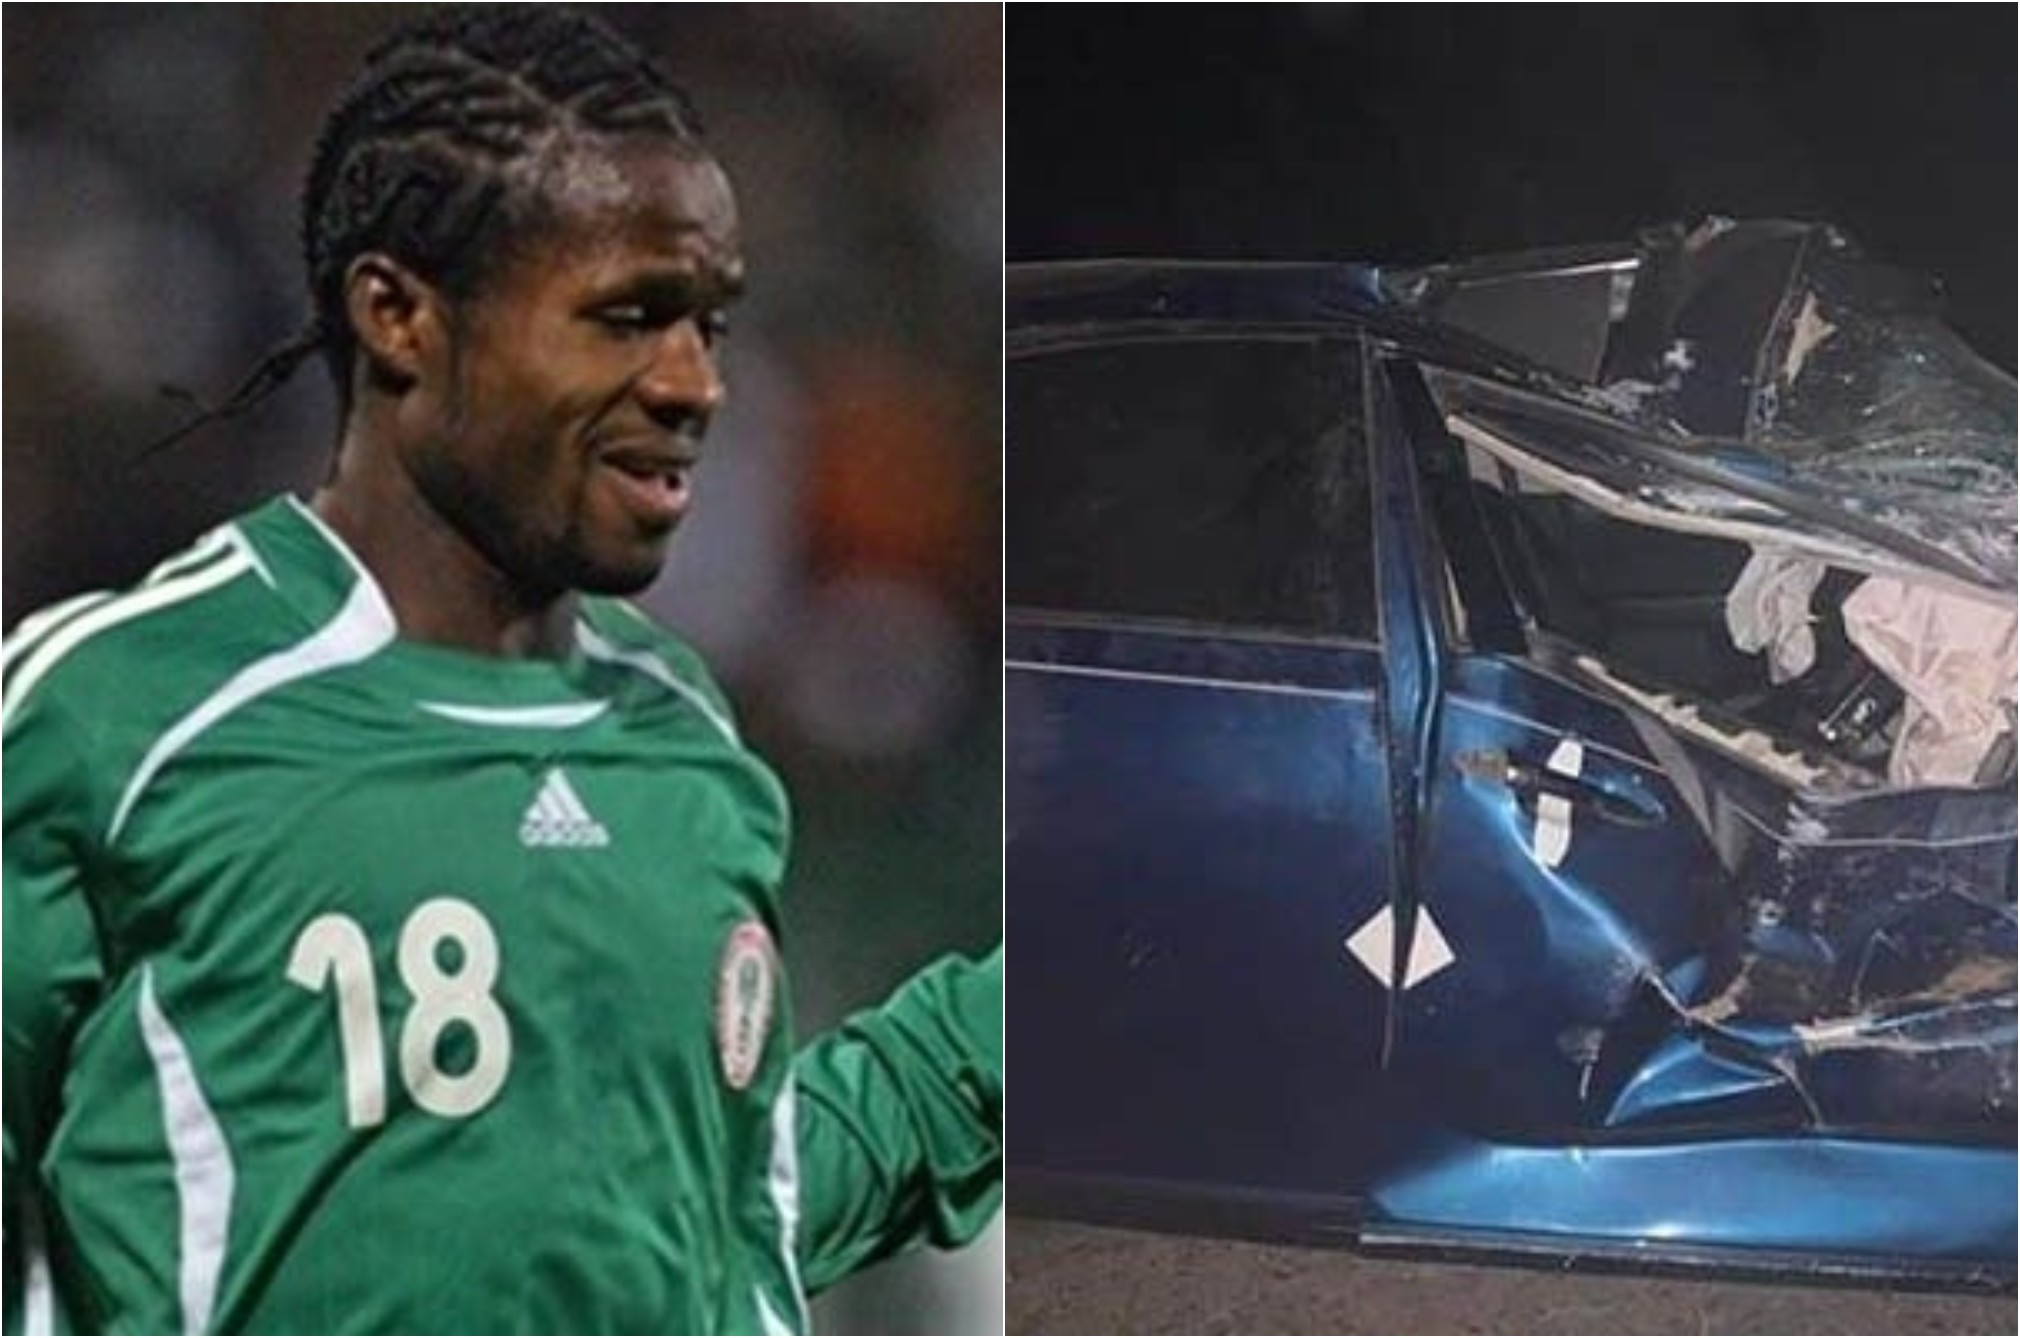 Former Super Eagles player, Christian Obodo and his mother involved in a car accident